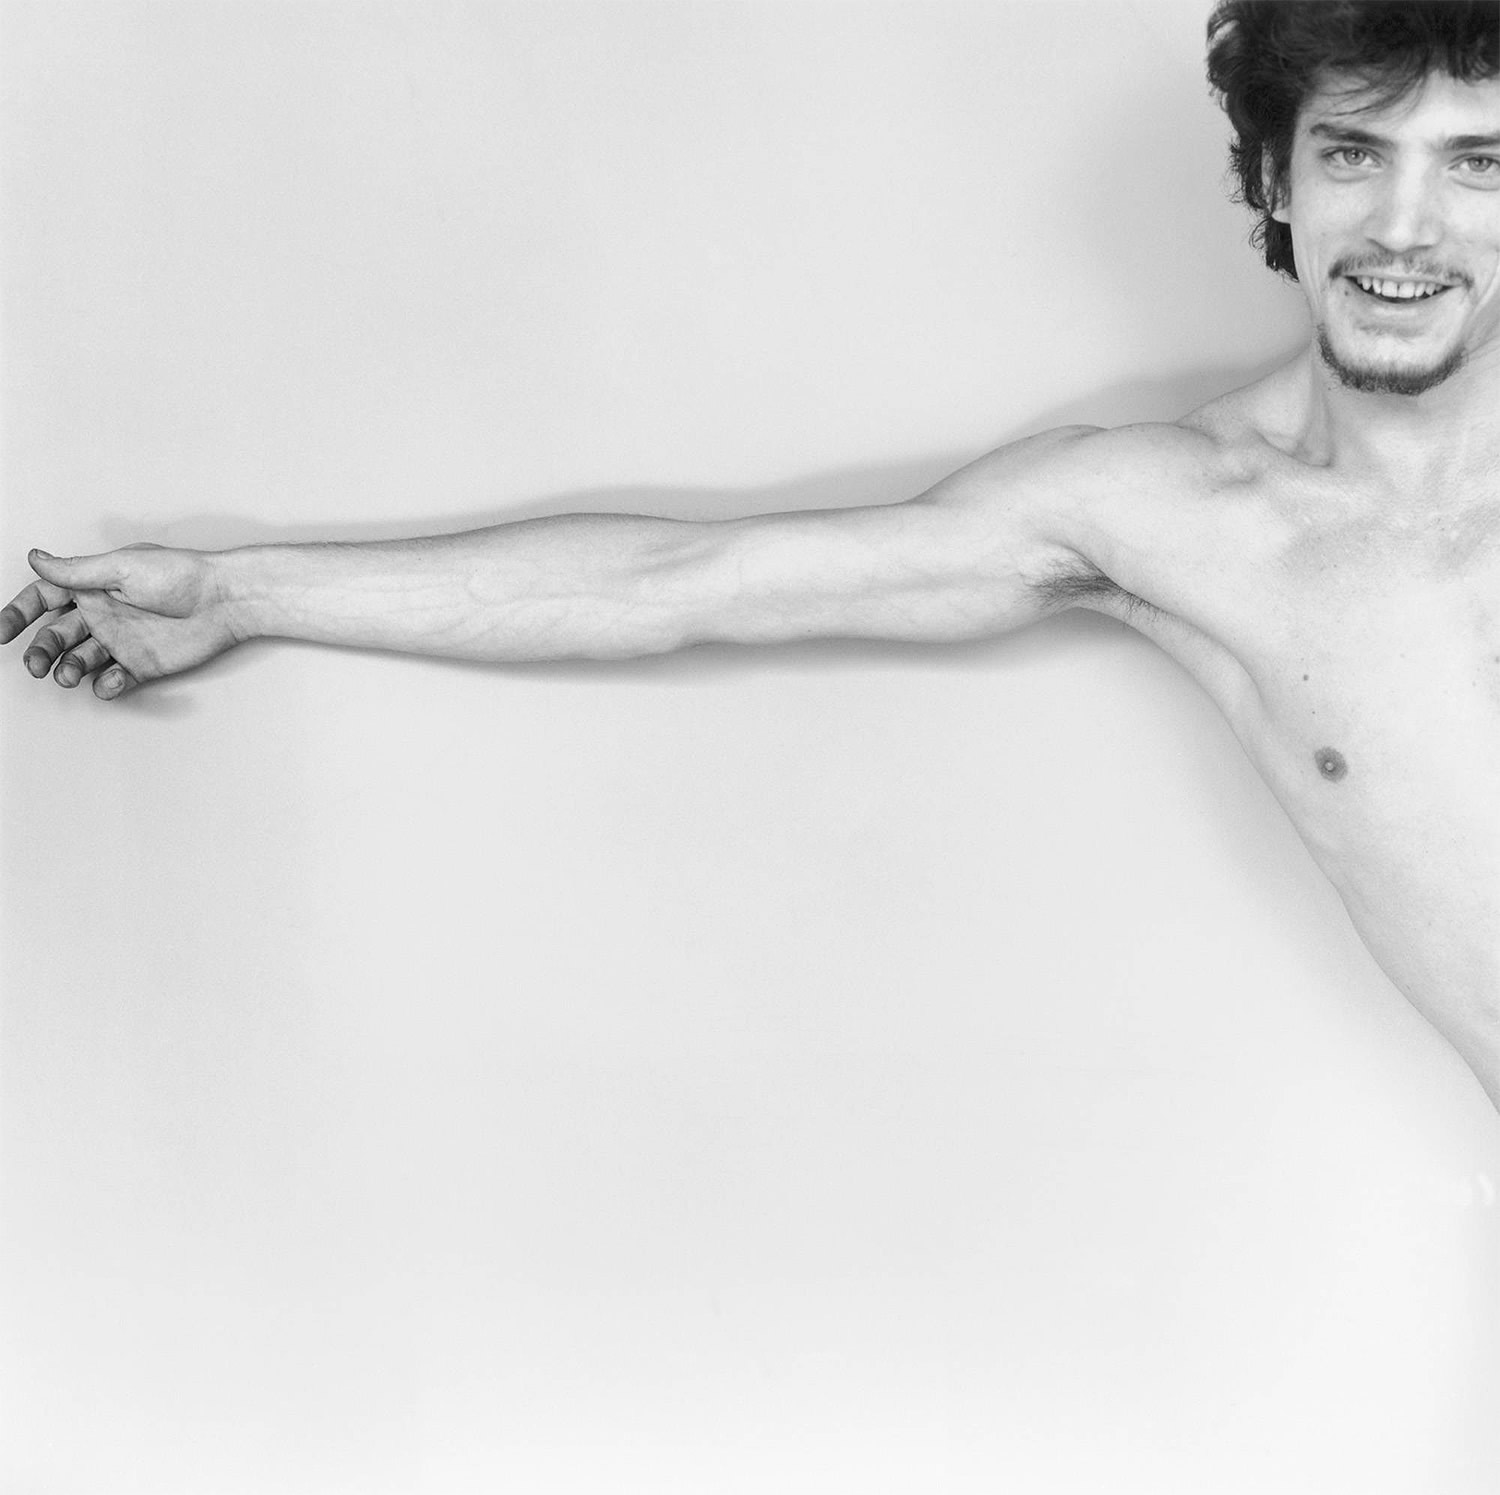 the lonely guy, self-portrait, © The Robert Mapplethorpe Foundation, Inc.